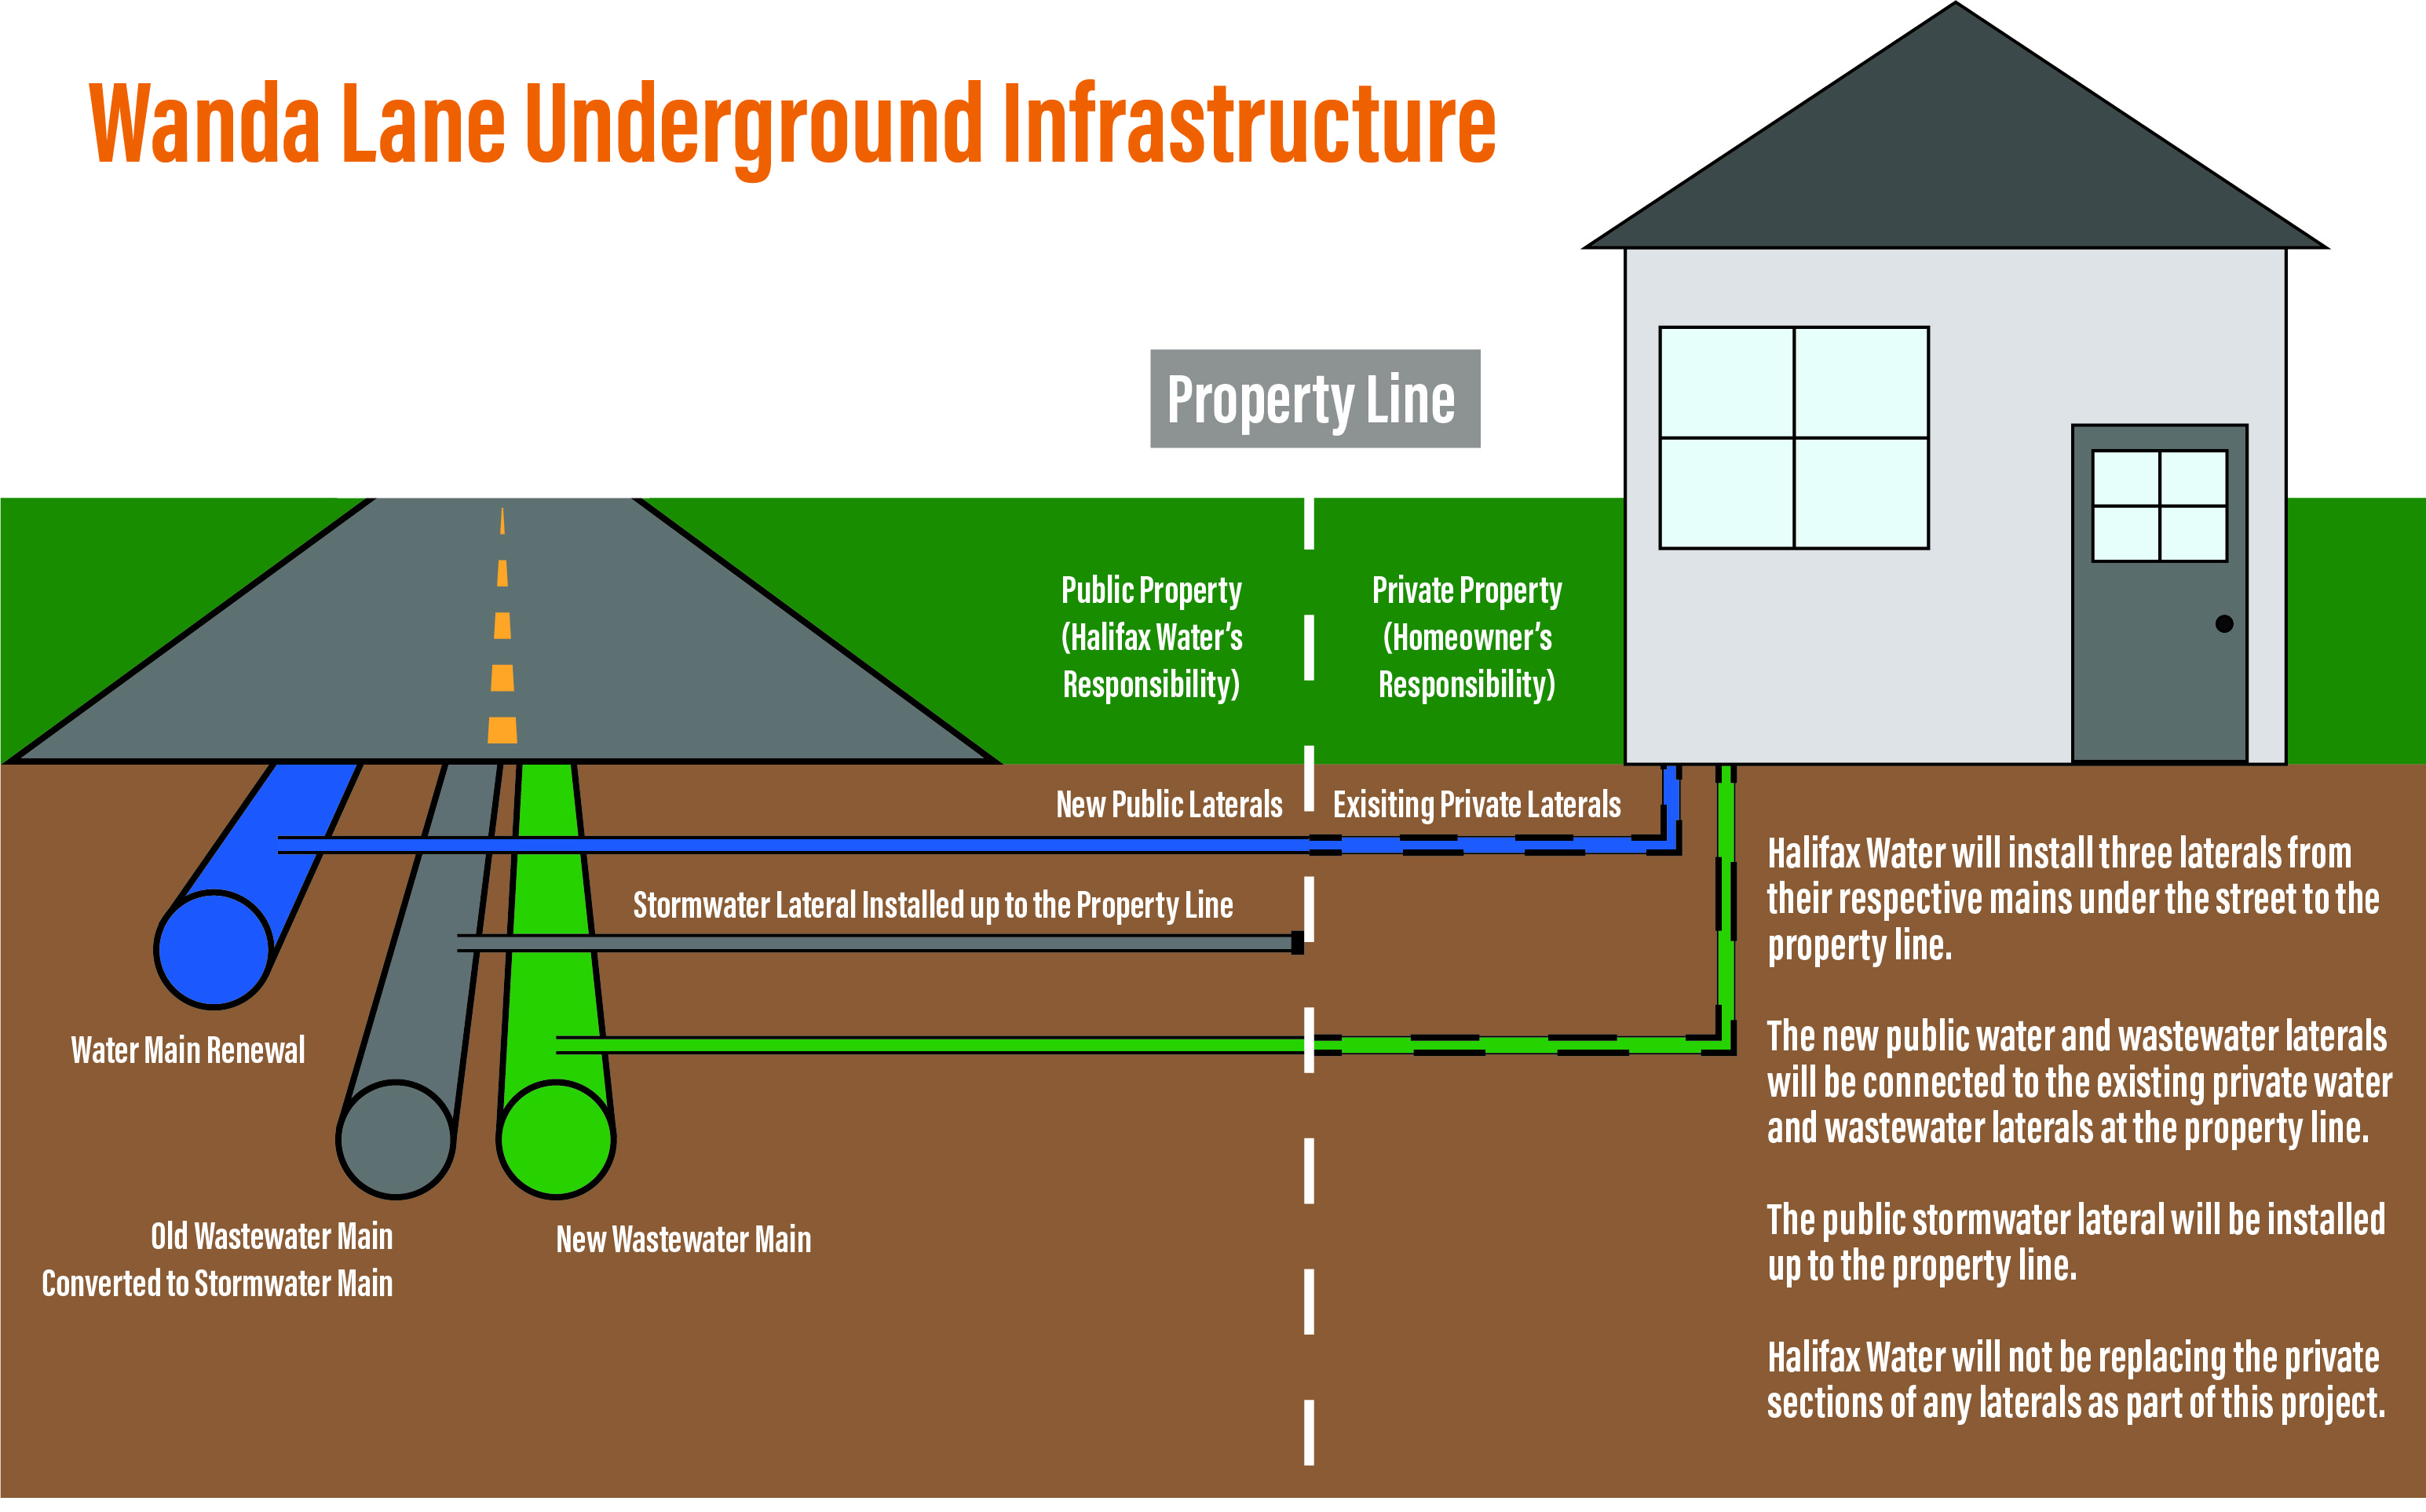 Wanda Lane Underground Infrastructure Diagram